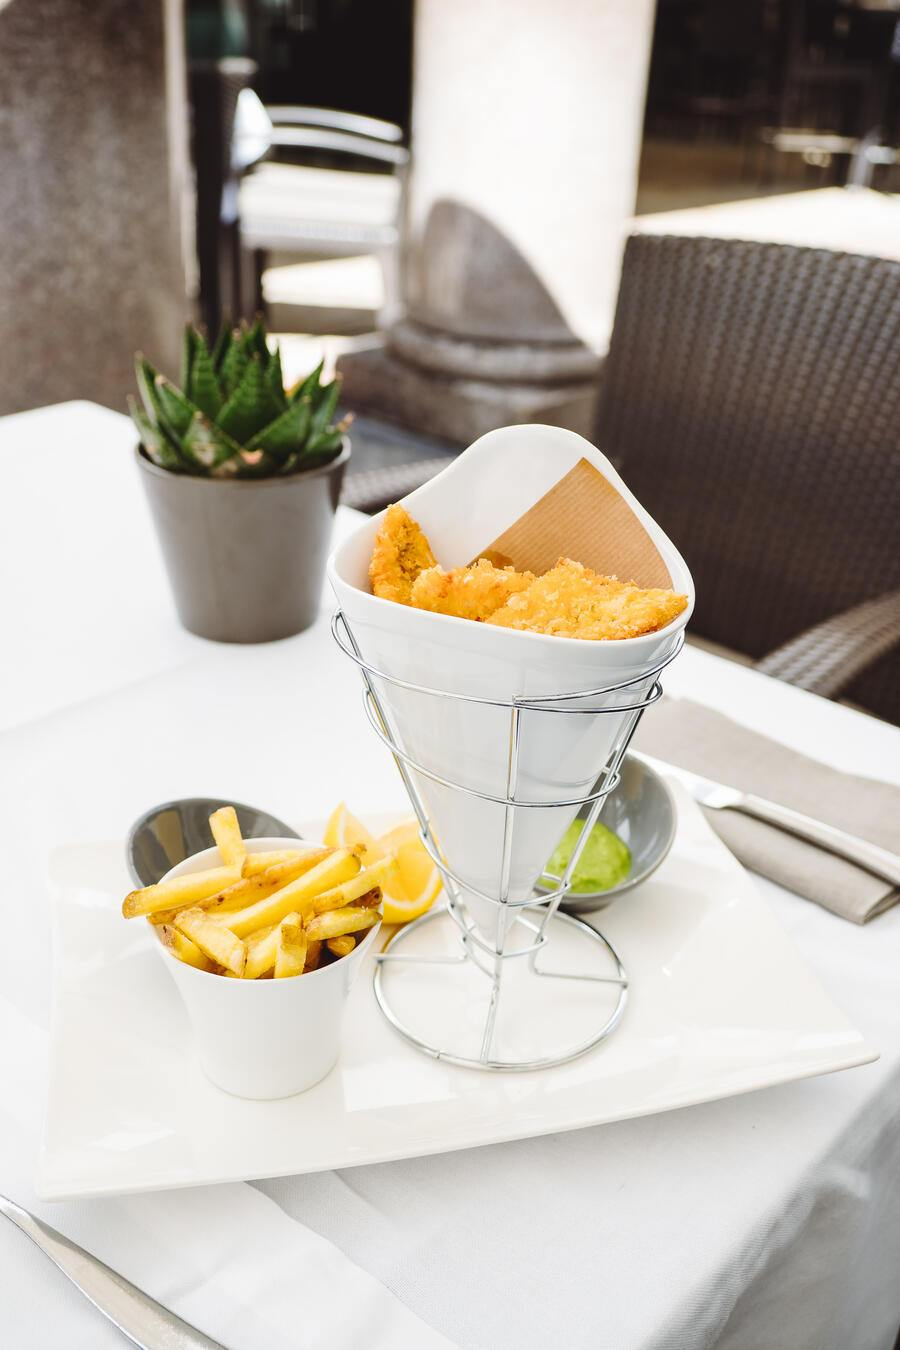 Perch & Chips - Swiss Deluxe Hotel Tour: Beau-Rivage Palace Hotel - Mittagessen im Café Beau-Rivage - Abendessen im Gourmet Restaurant von Anne-Sohie Pic  - Lausanne - 3. September 2019 - Copyright Olivia Pulver